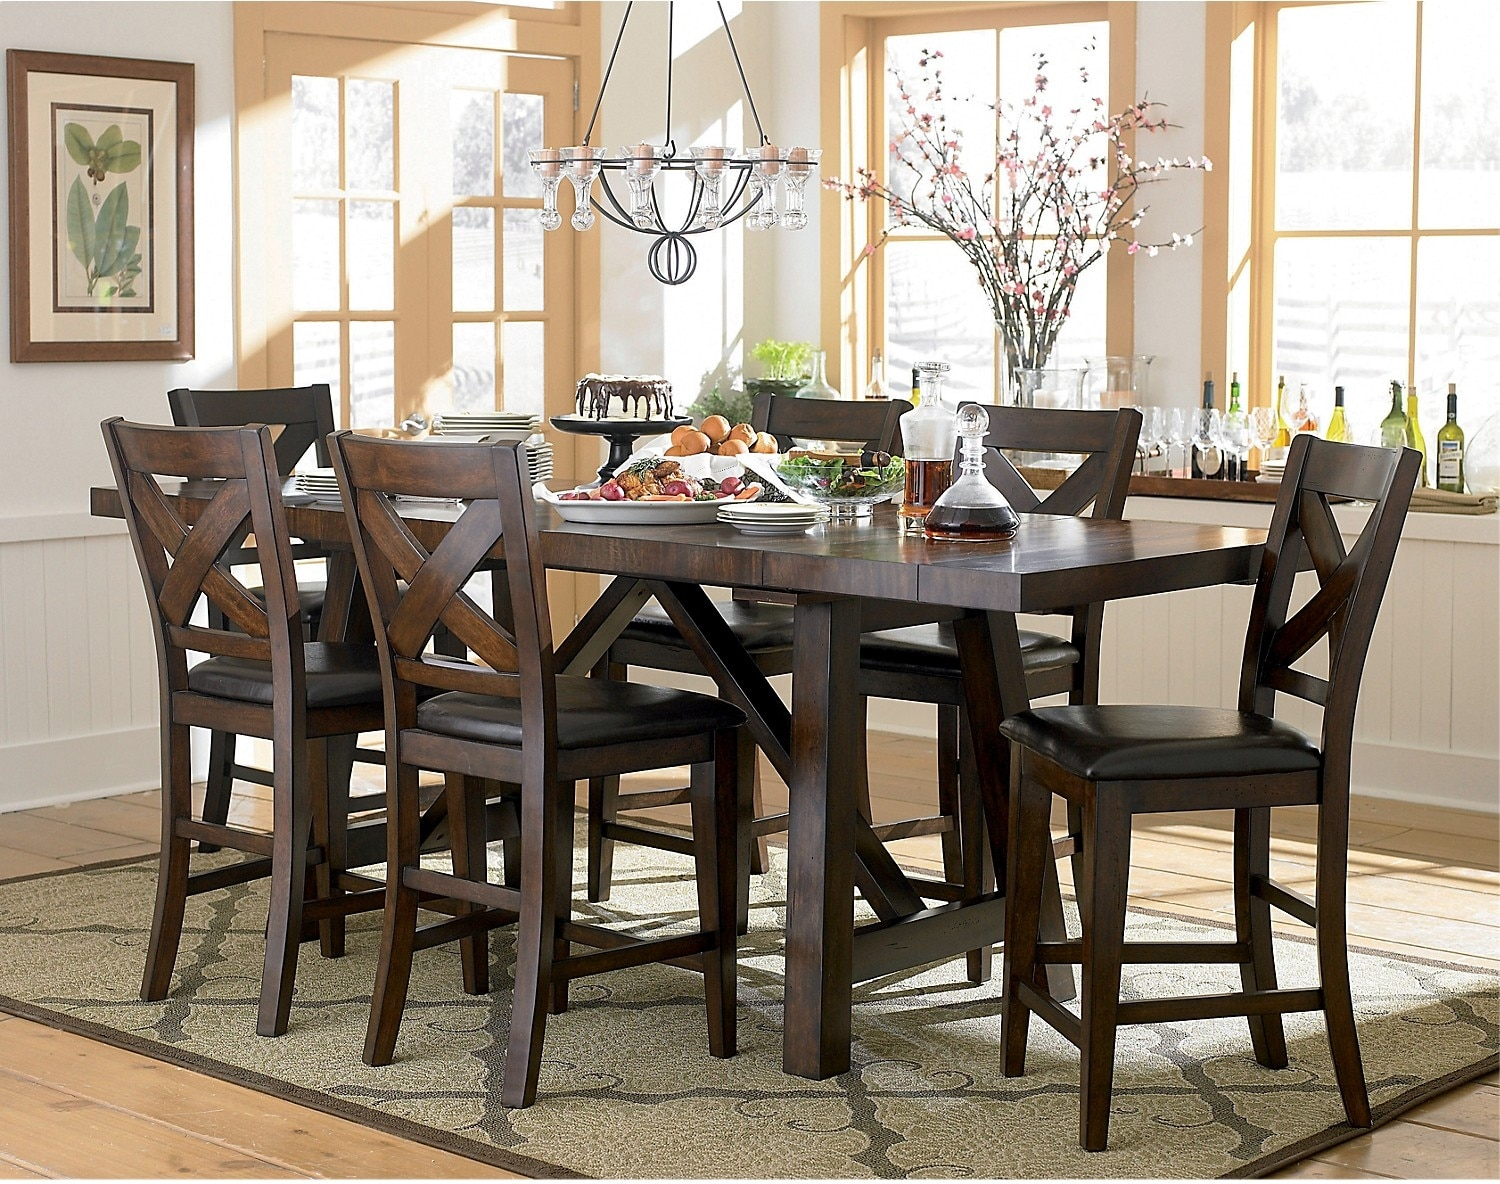 Adara 8 Piece Counter Height Dining Package The Brick